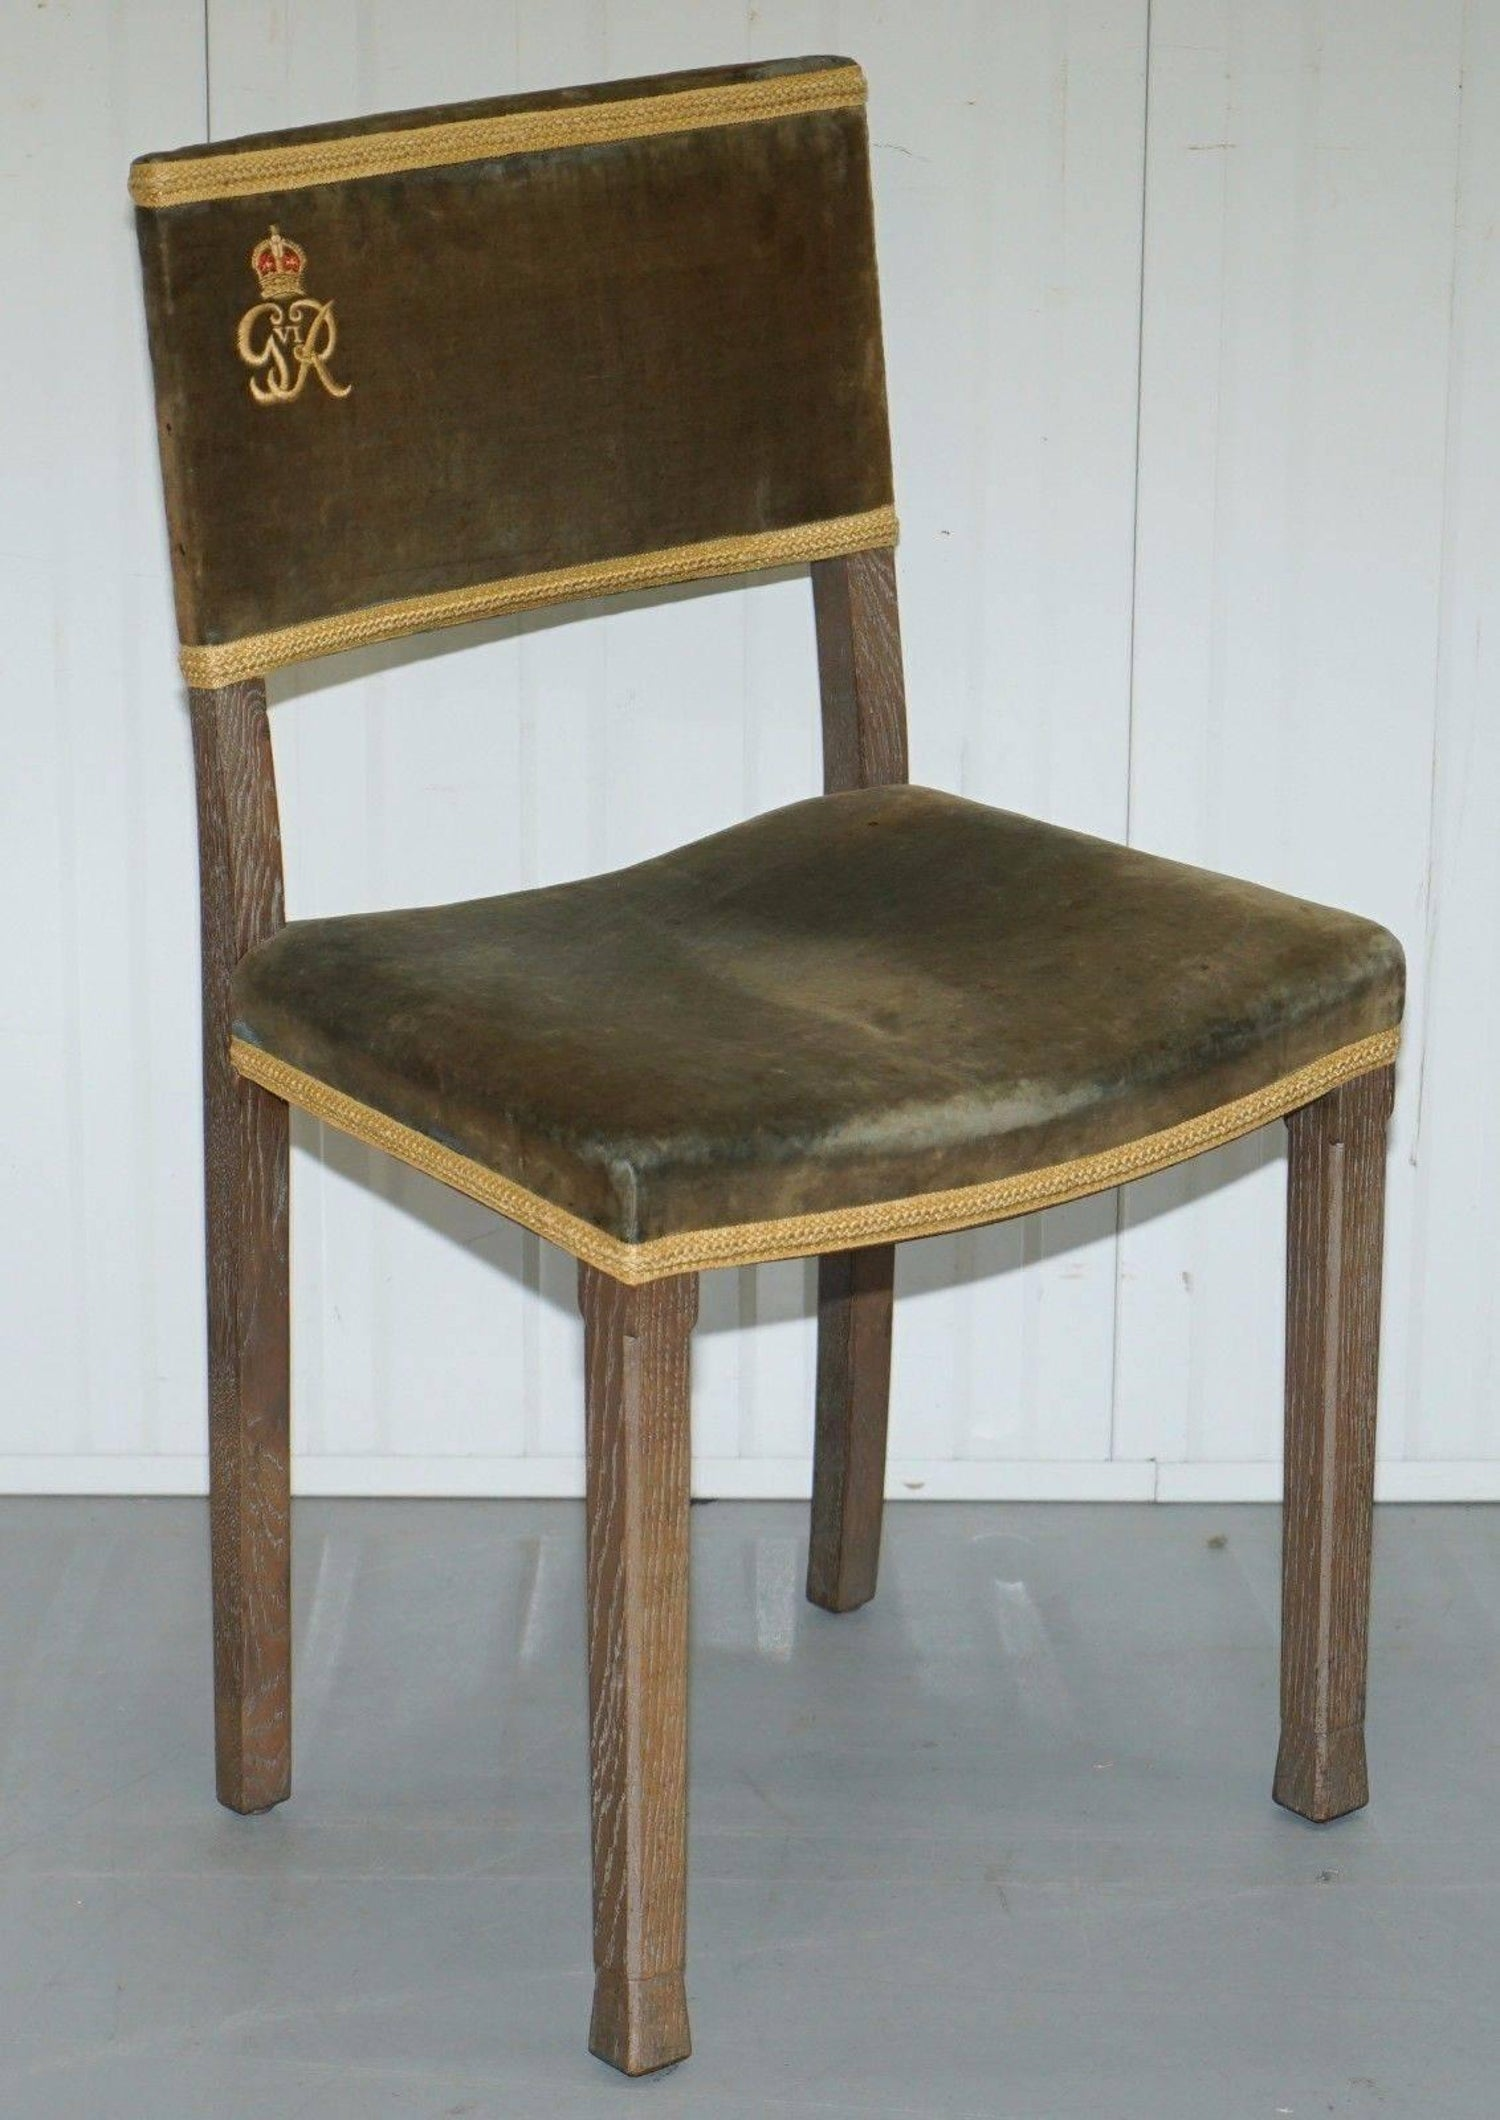 Exceptional 1937 King George VI Coronation Chair and Stool Fully